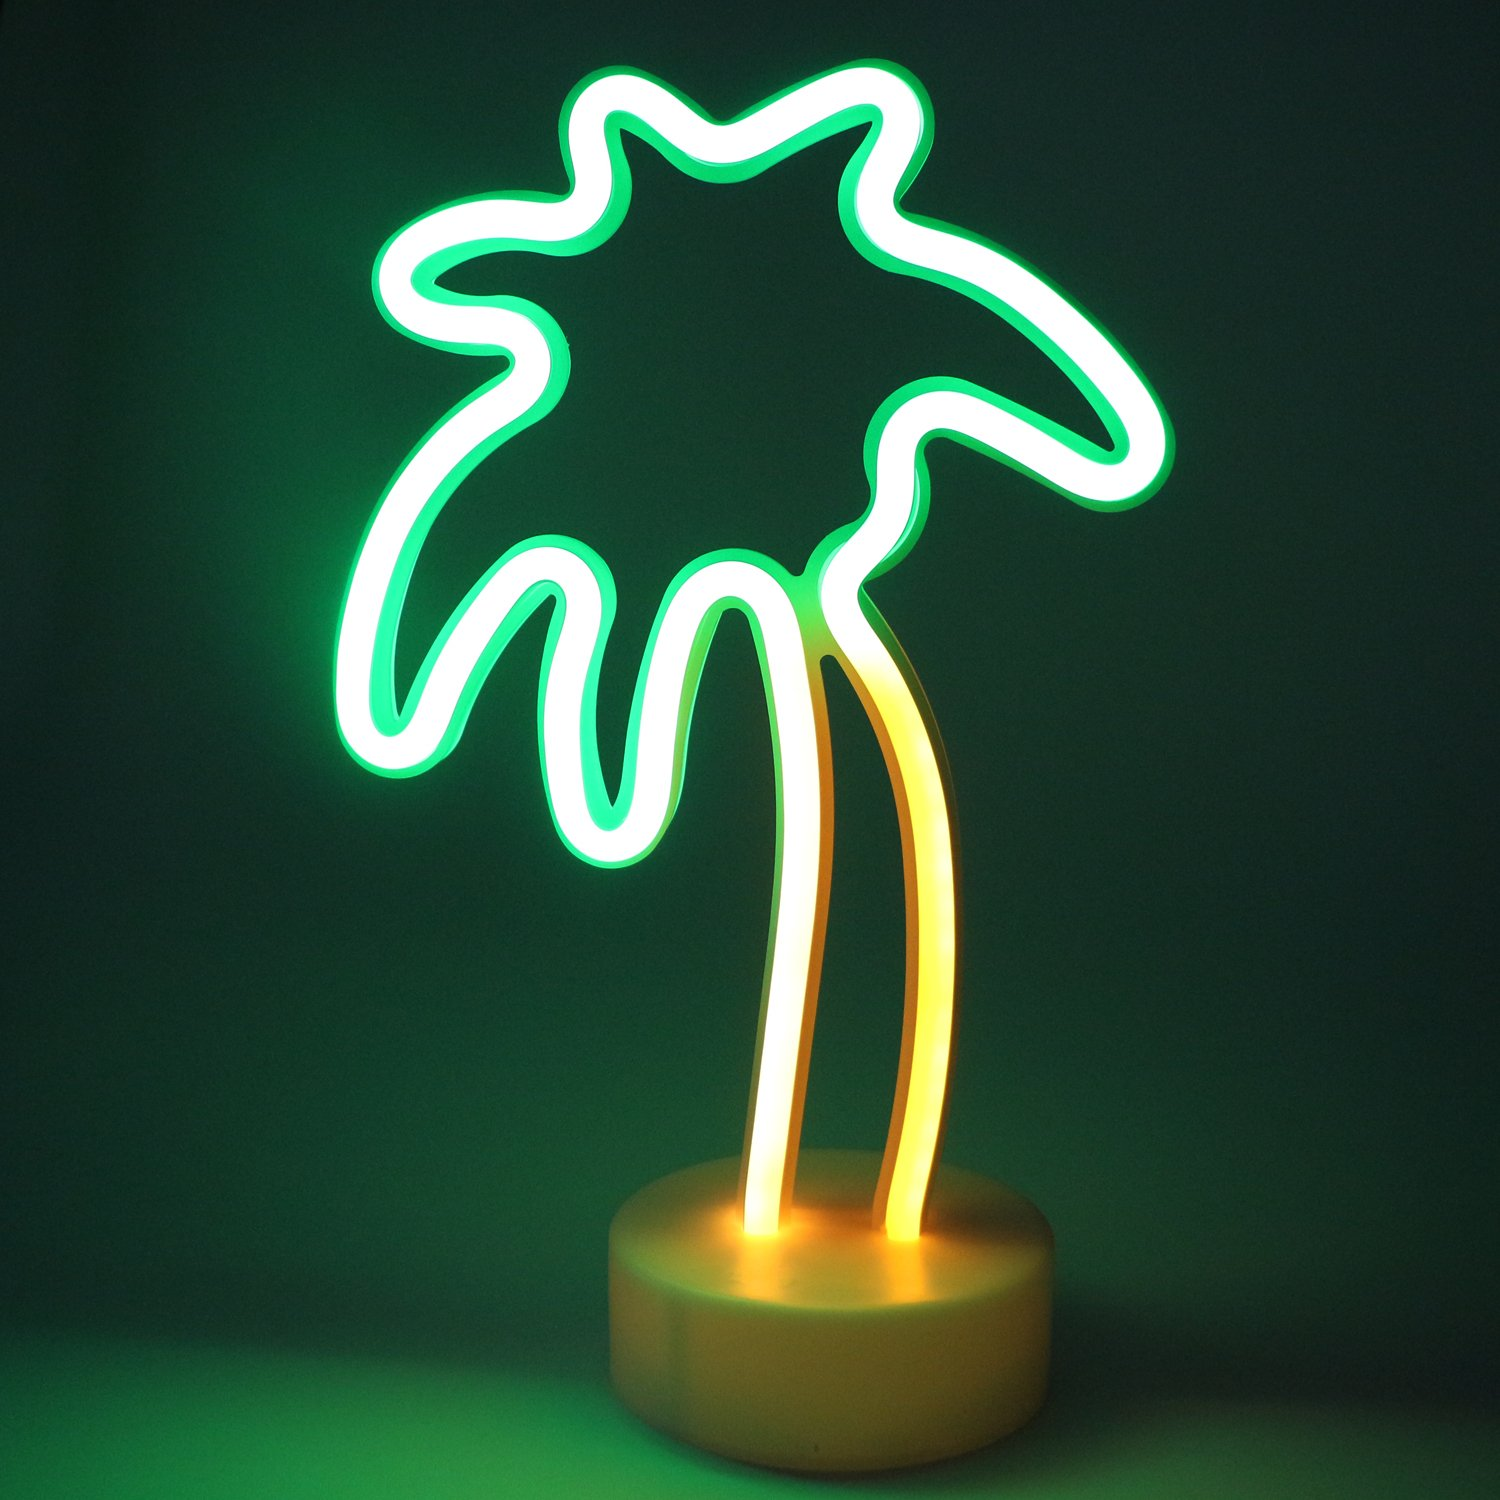 Coconut Tree LED Neon Light Signs - XIYUNTE Room Decor Neon Light Sign with Pedestal Night Lights Battery Operated Light up Sign Bedside Table Lamps Neon Signs for Home Decoration